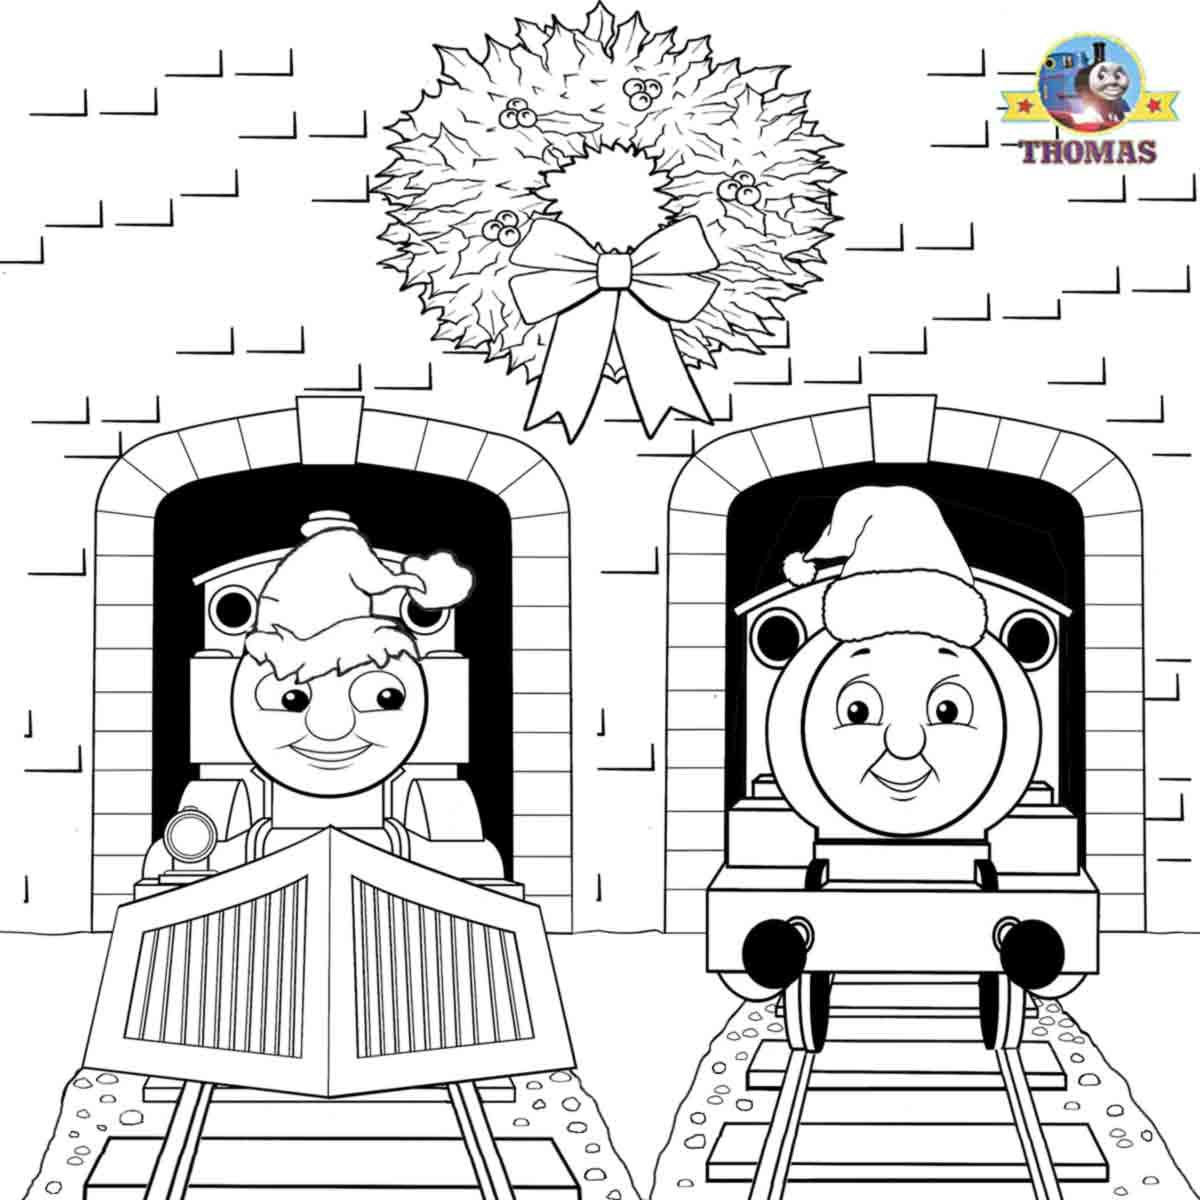 Santa Hat Coloring Page Train Thomas the tank engine Friends free